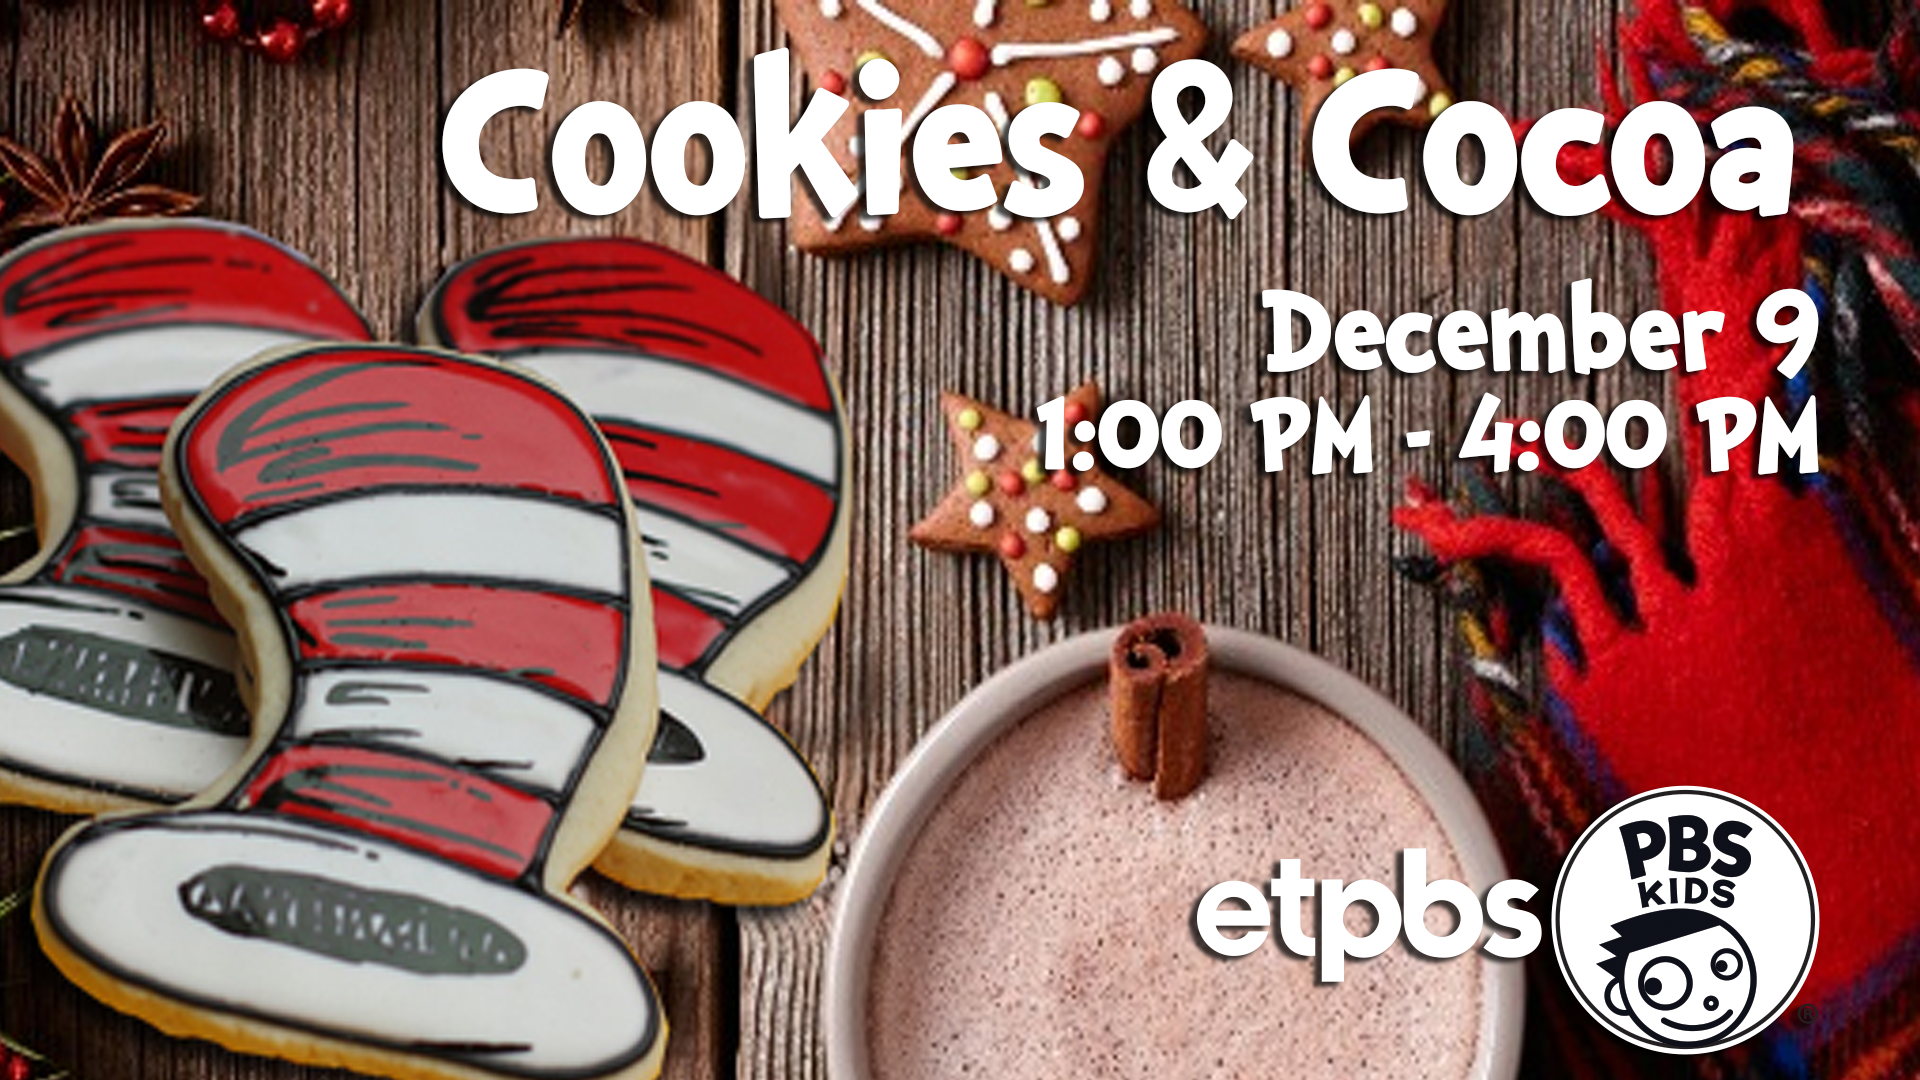 COOKIES AND COCOA - Sunday, December 9 from 1-4 pm.